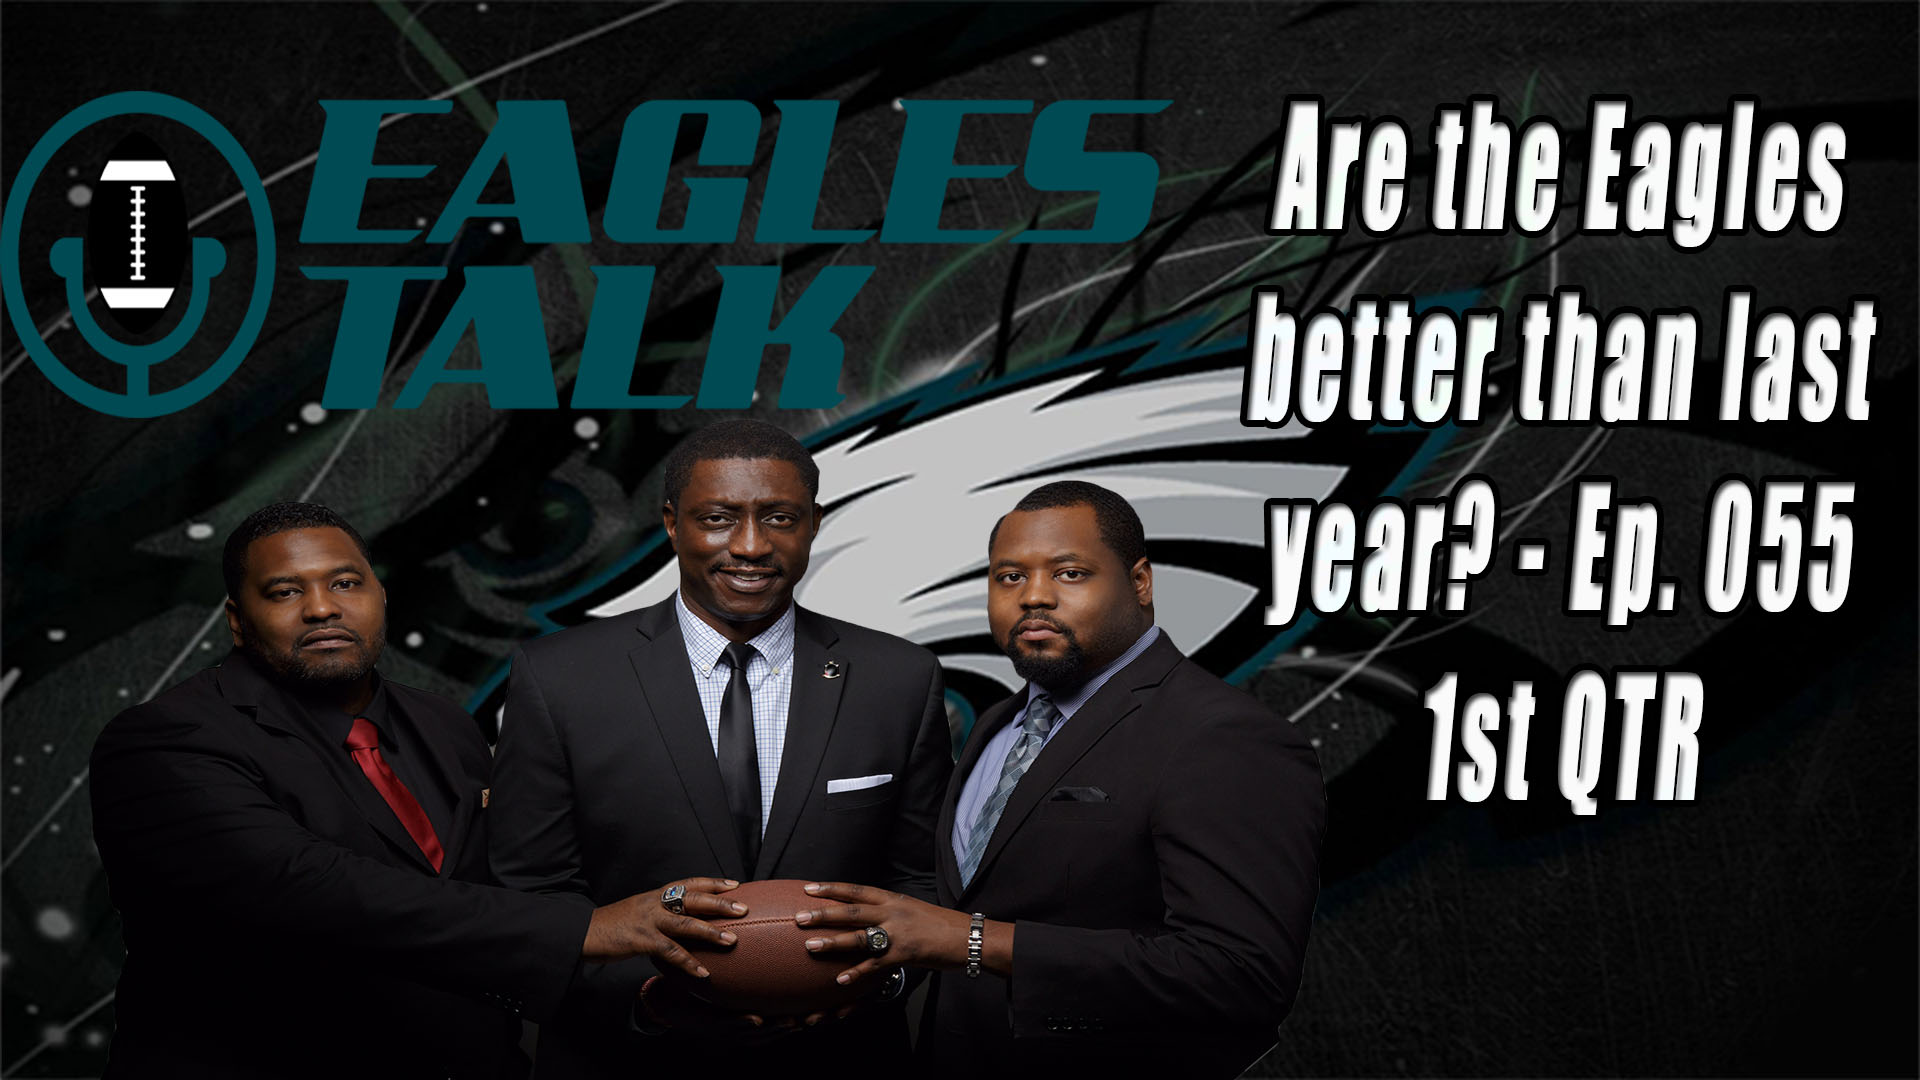 Eagles Talk Ep055: Are the Eagles better than last year? (1st QTR)